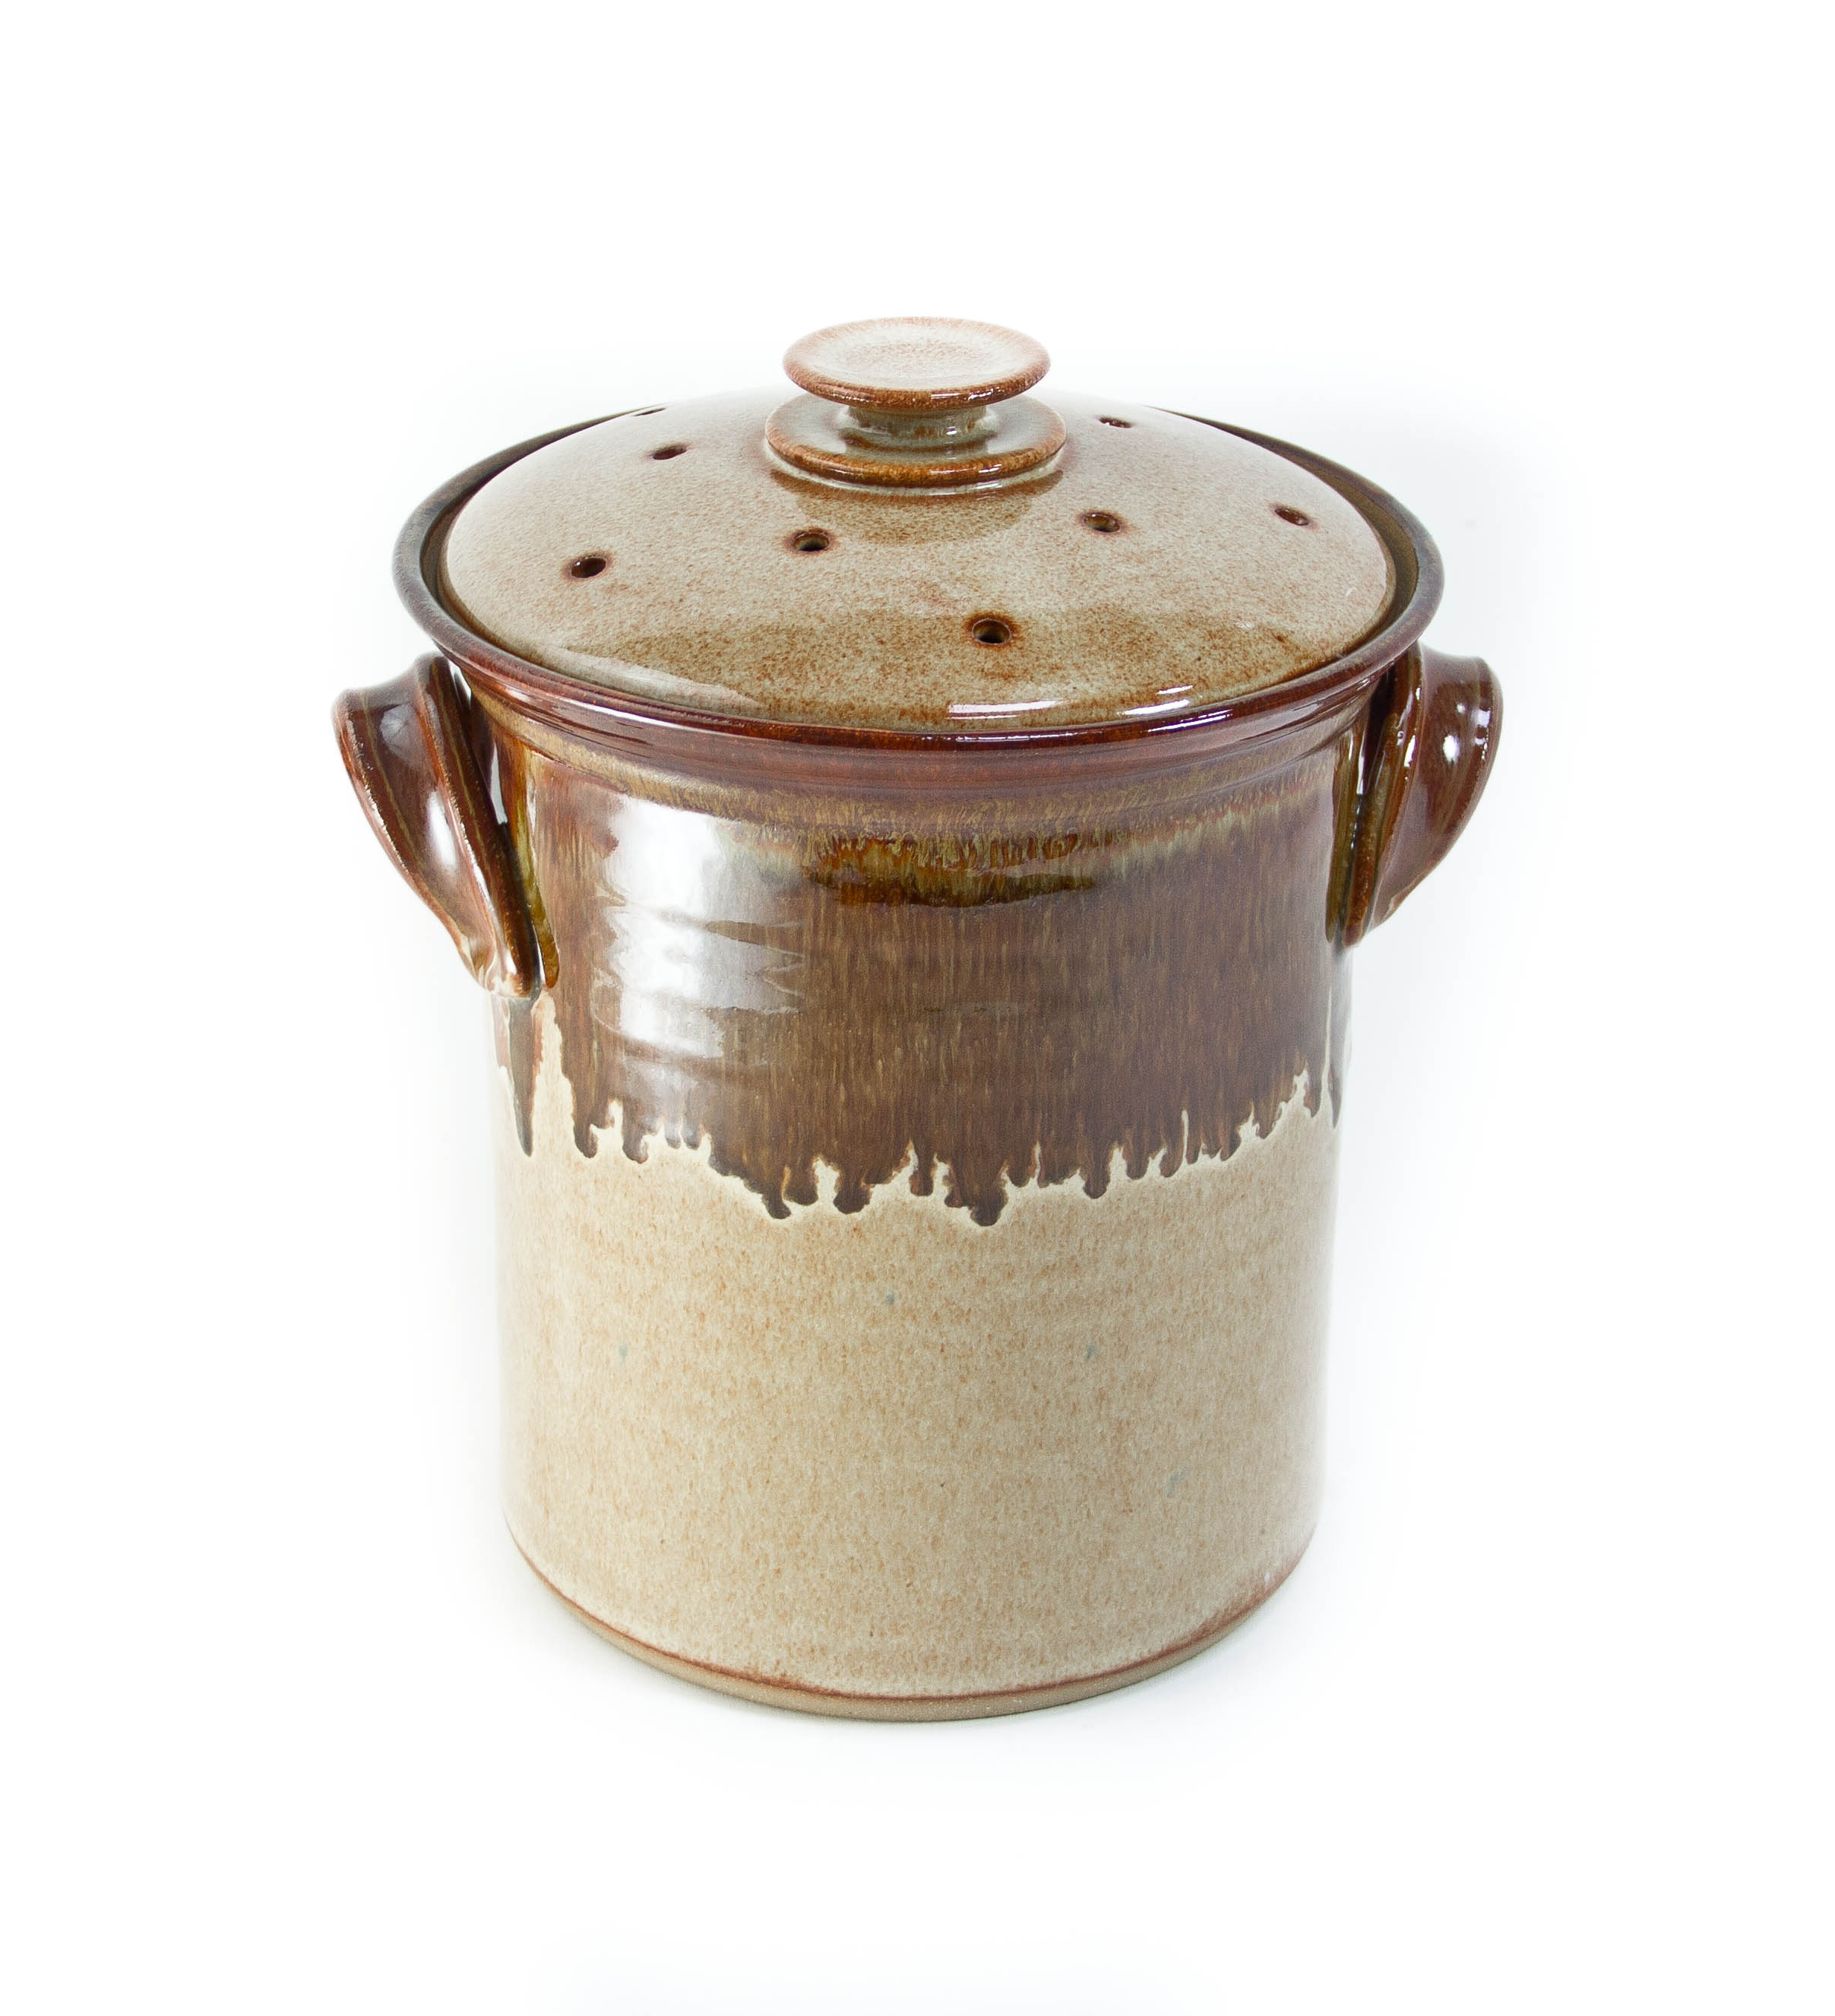 Wheel Thrown Pottery Compost Crock